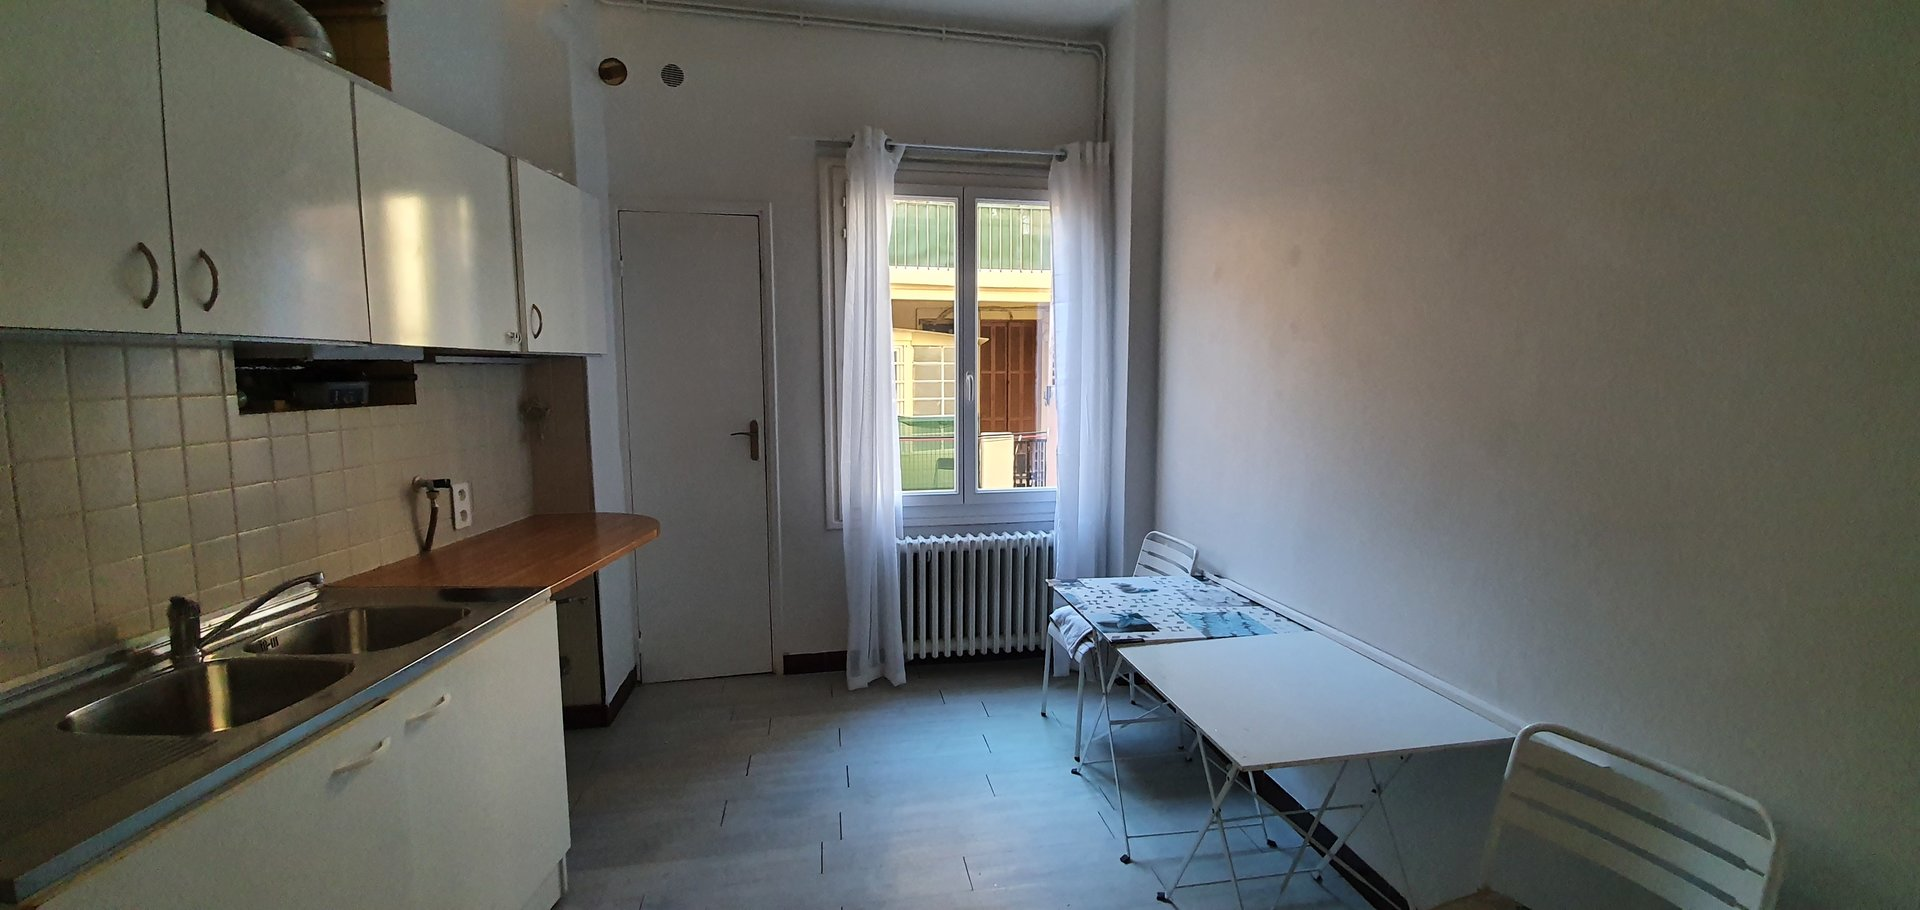 Sale Apartment - Nice Borriglione